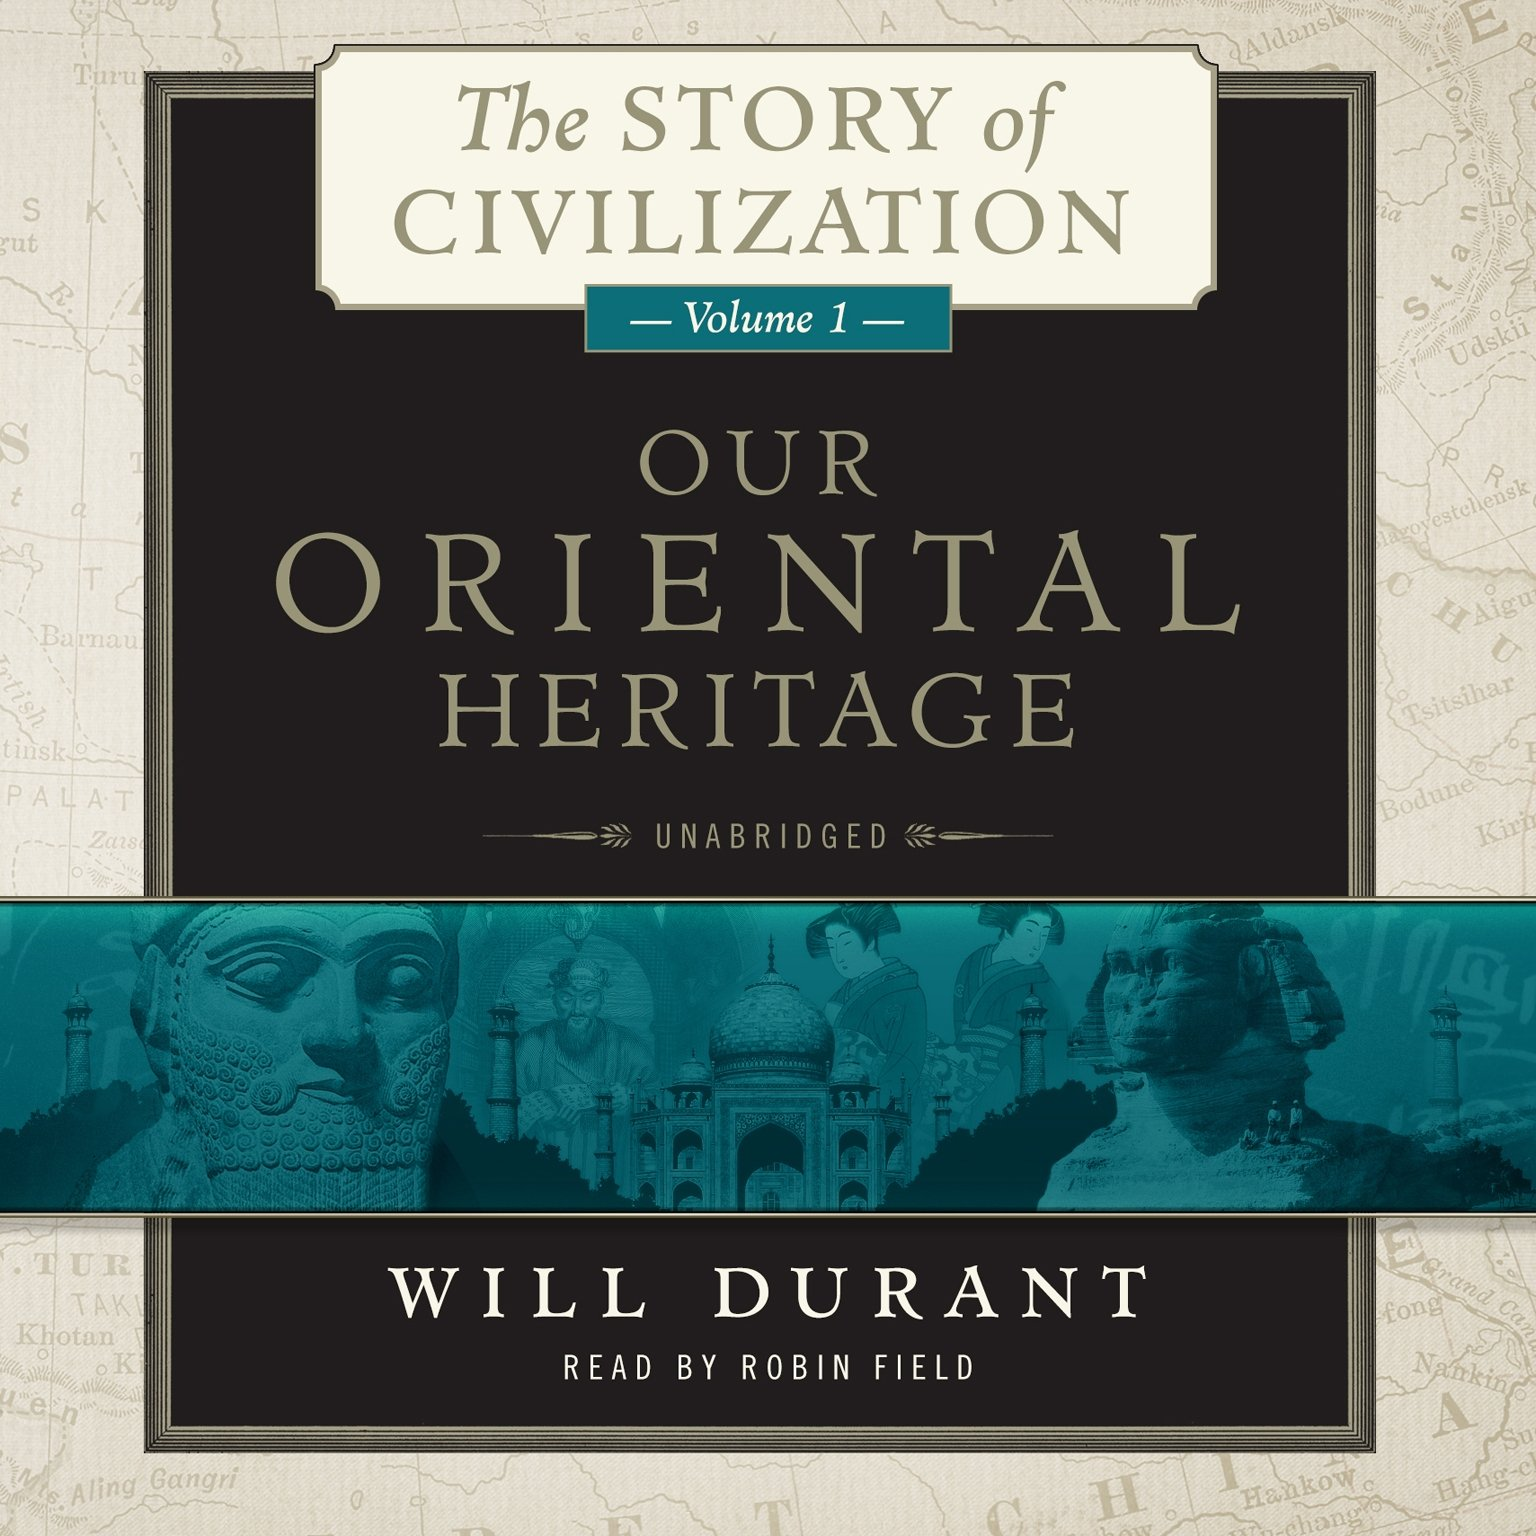 Our Oriental Heritage: The Story of Civilization, Volume 1 (The Story of Civilization series)